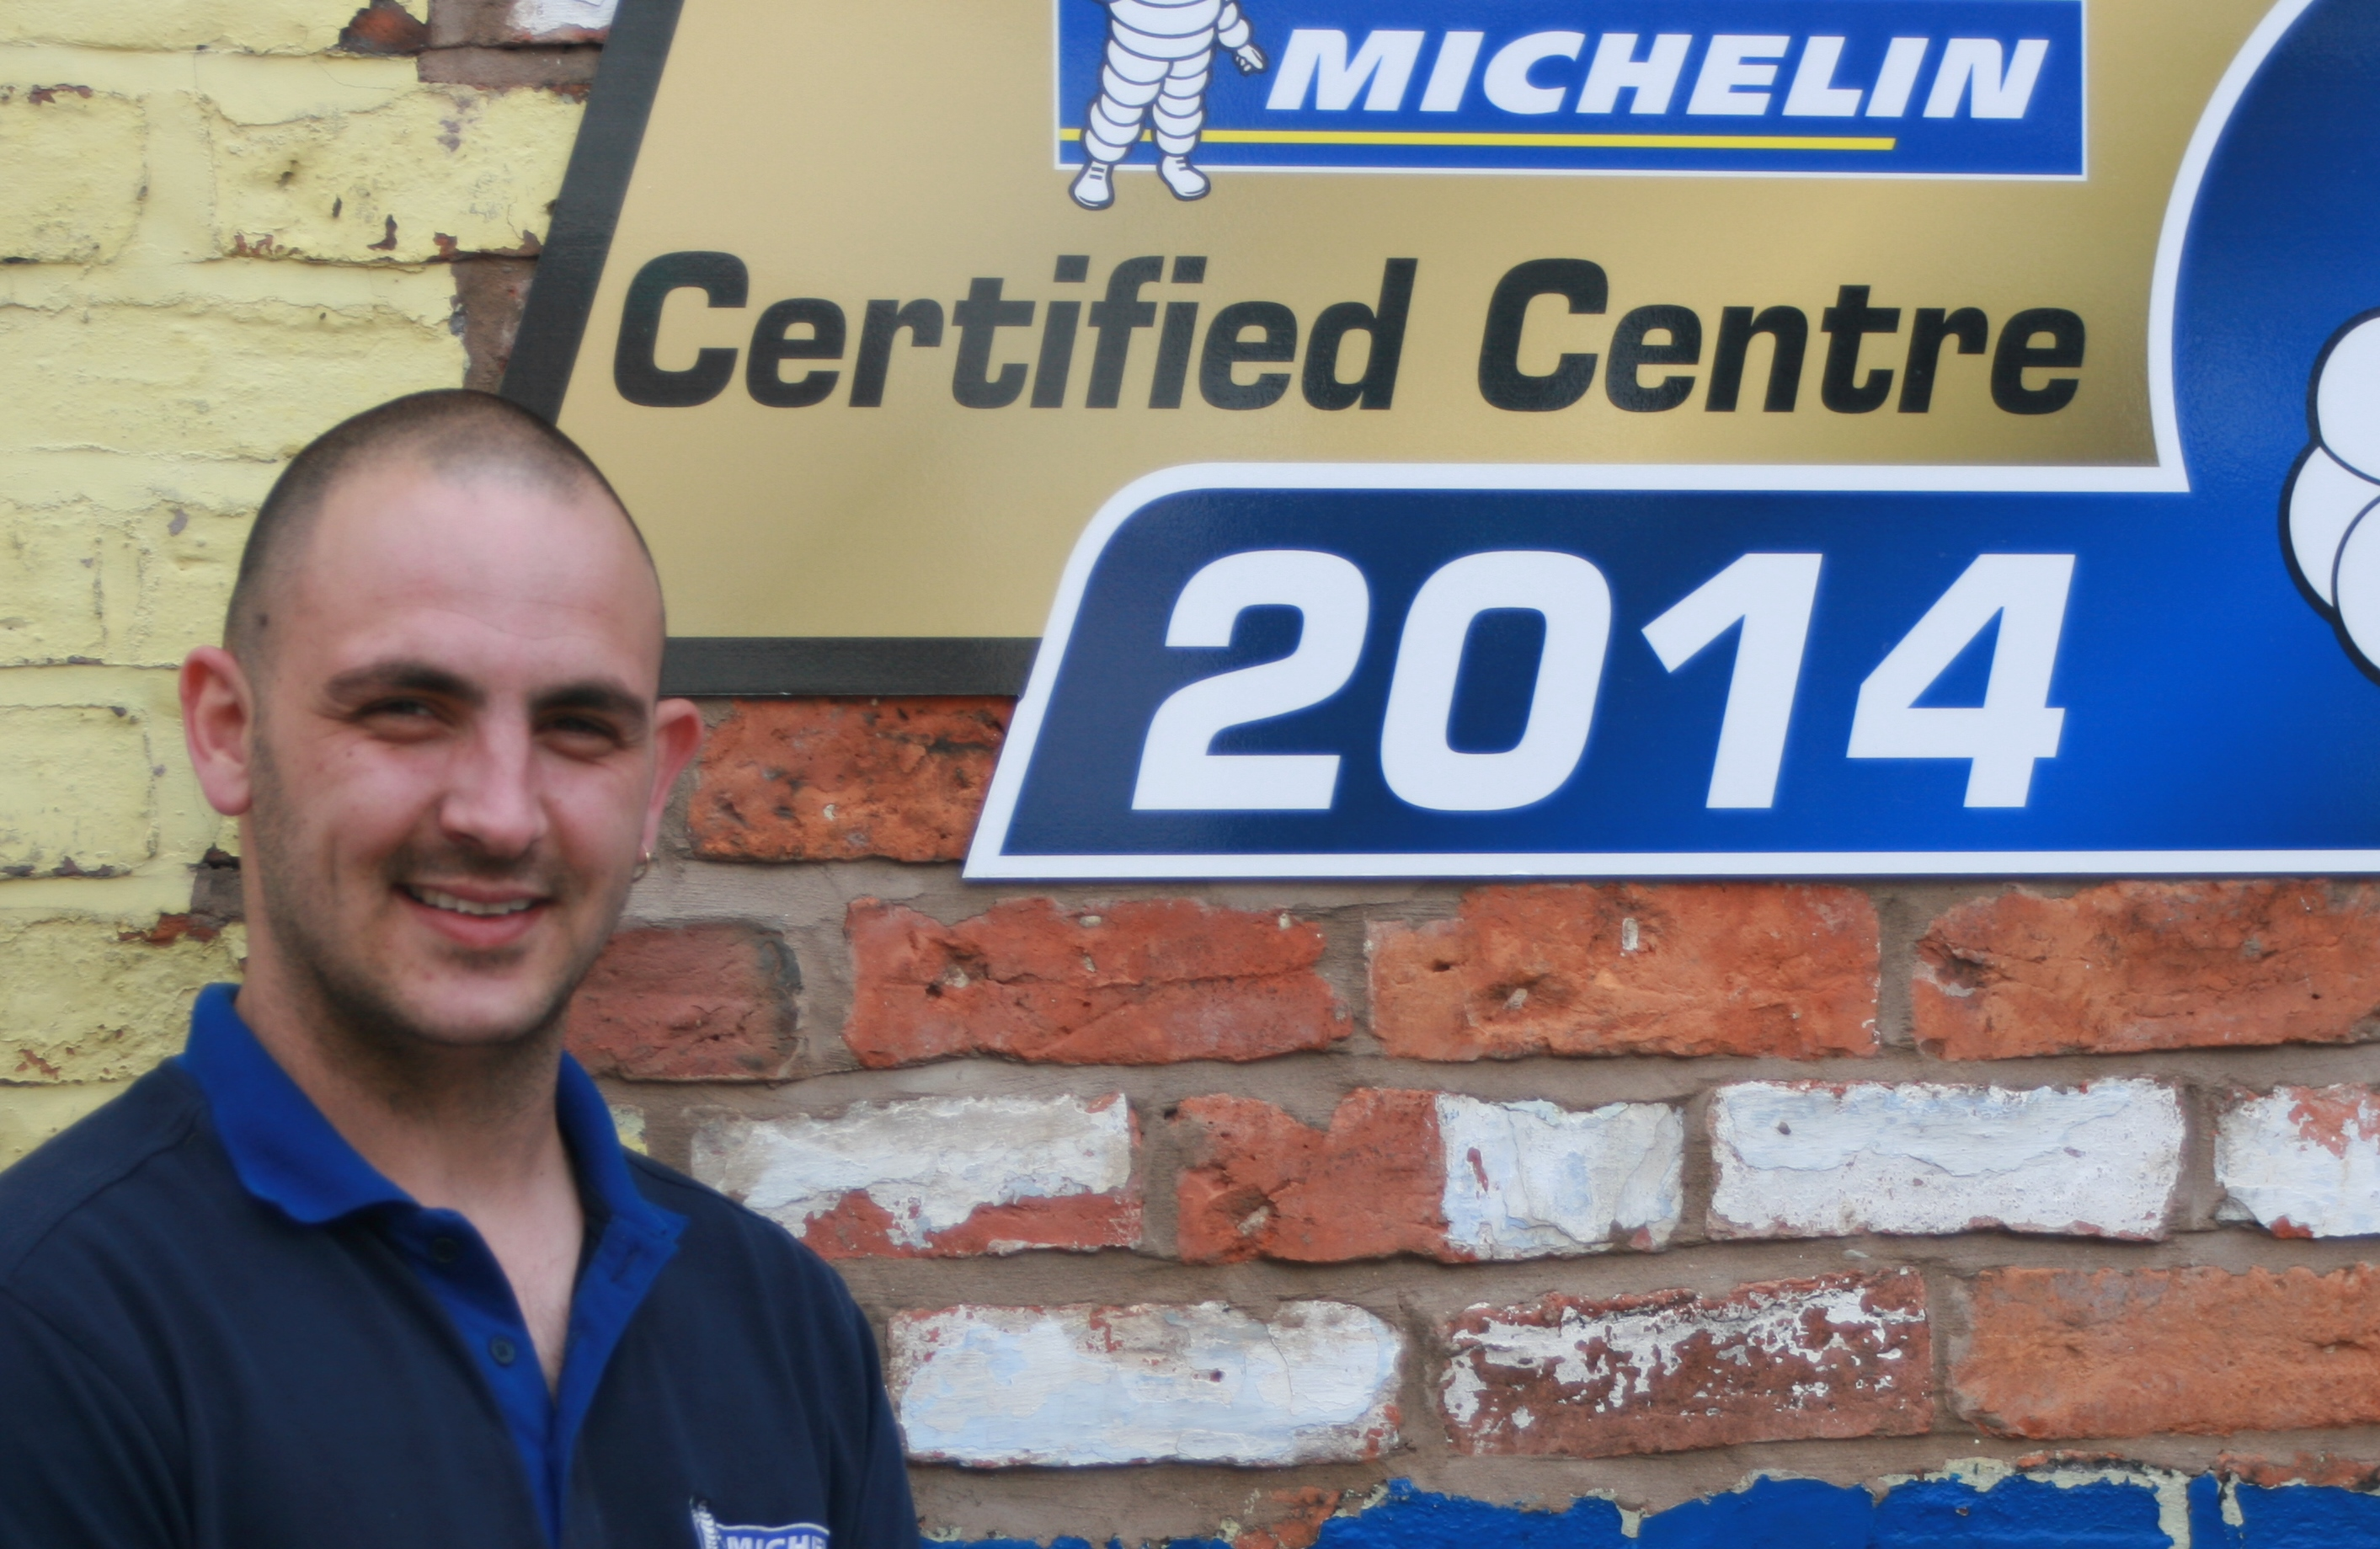 Tyres In Crewe Chris Hughes Of Crewe Tyre And Exhaust In The News Crewe